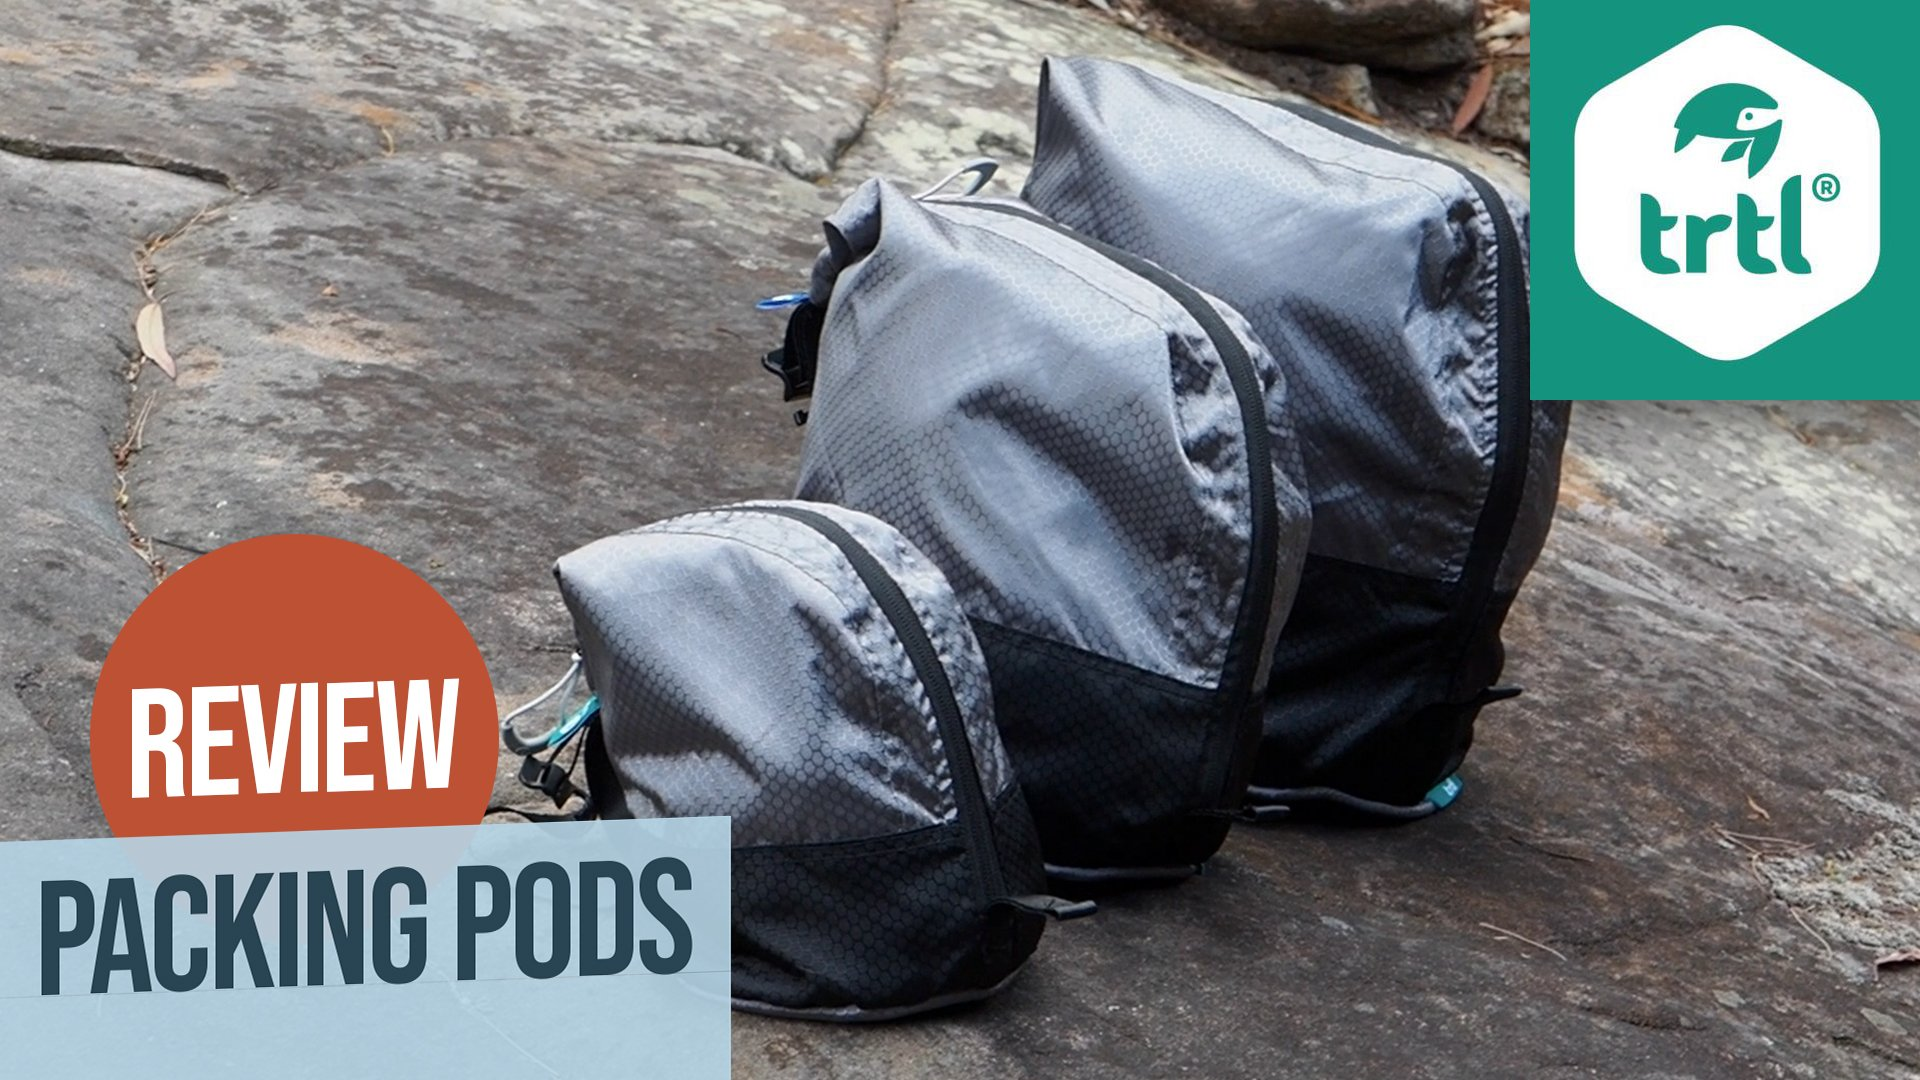 trtl packing pods review